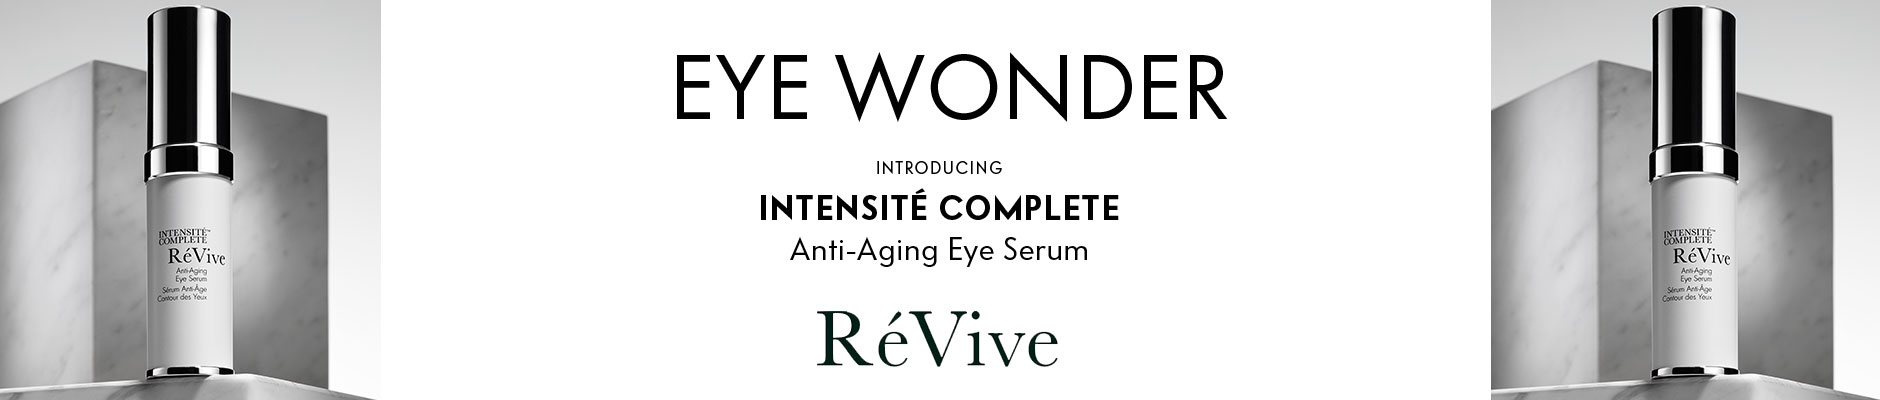 Eye Wonder: ReVive - Introducing Intensite Complete Anti-Aging Eye Serum